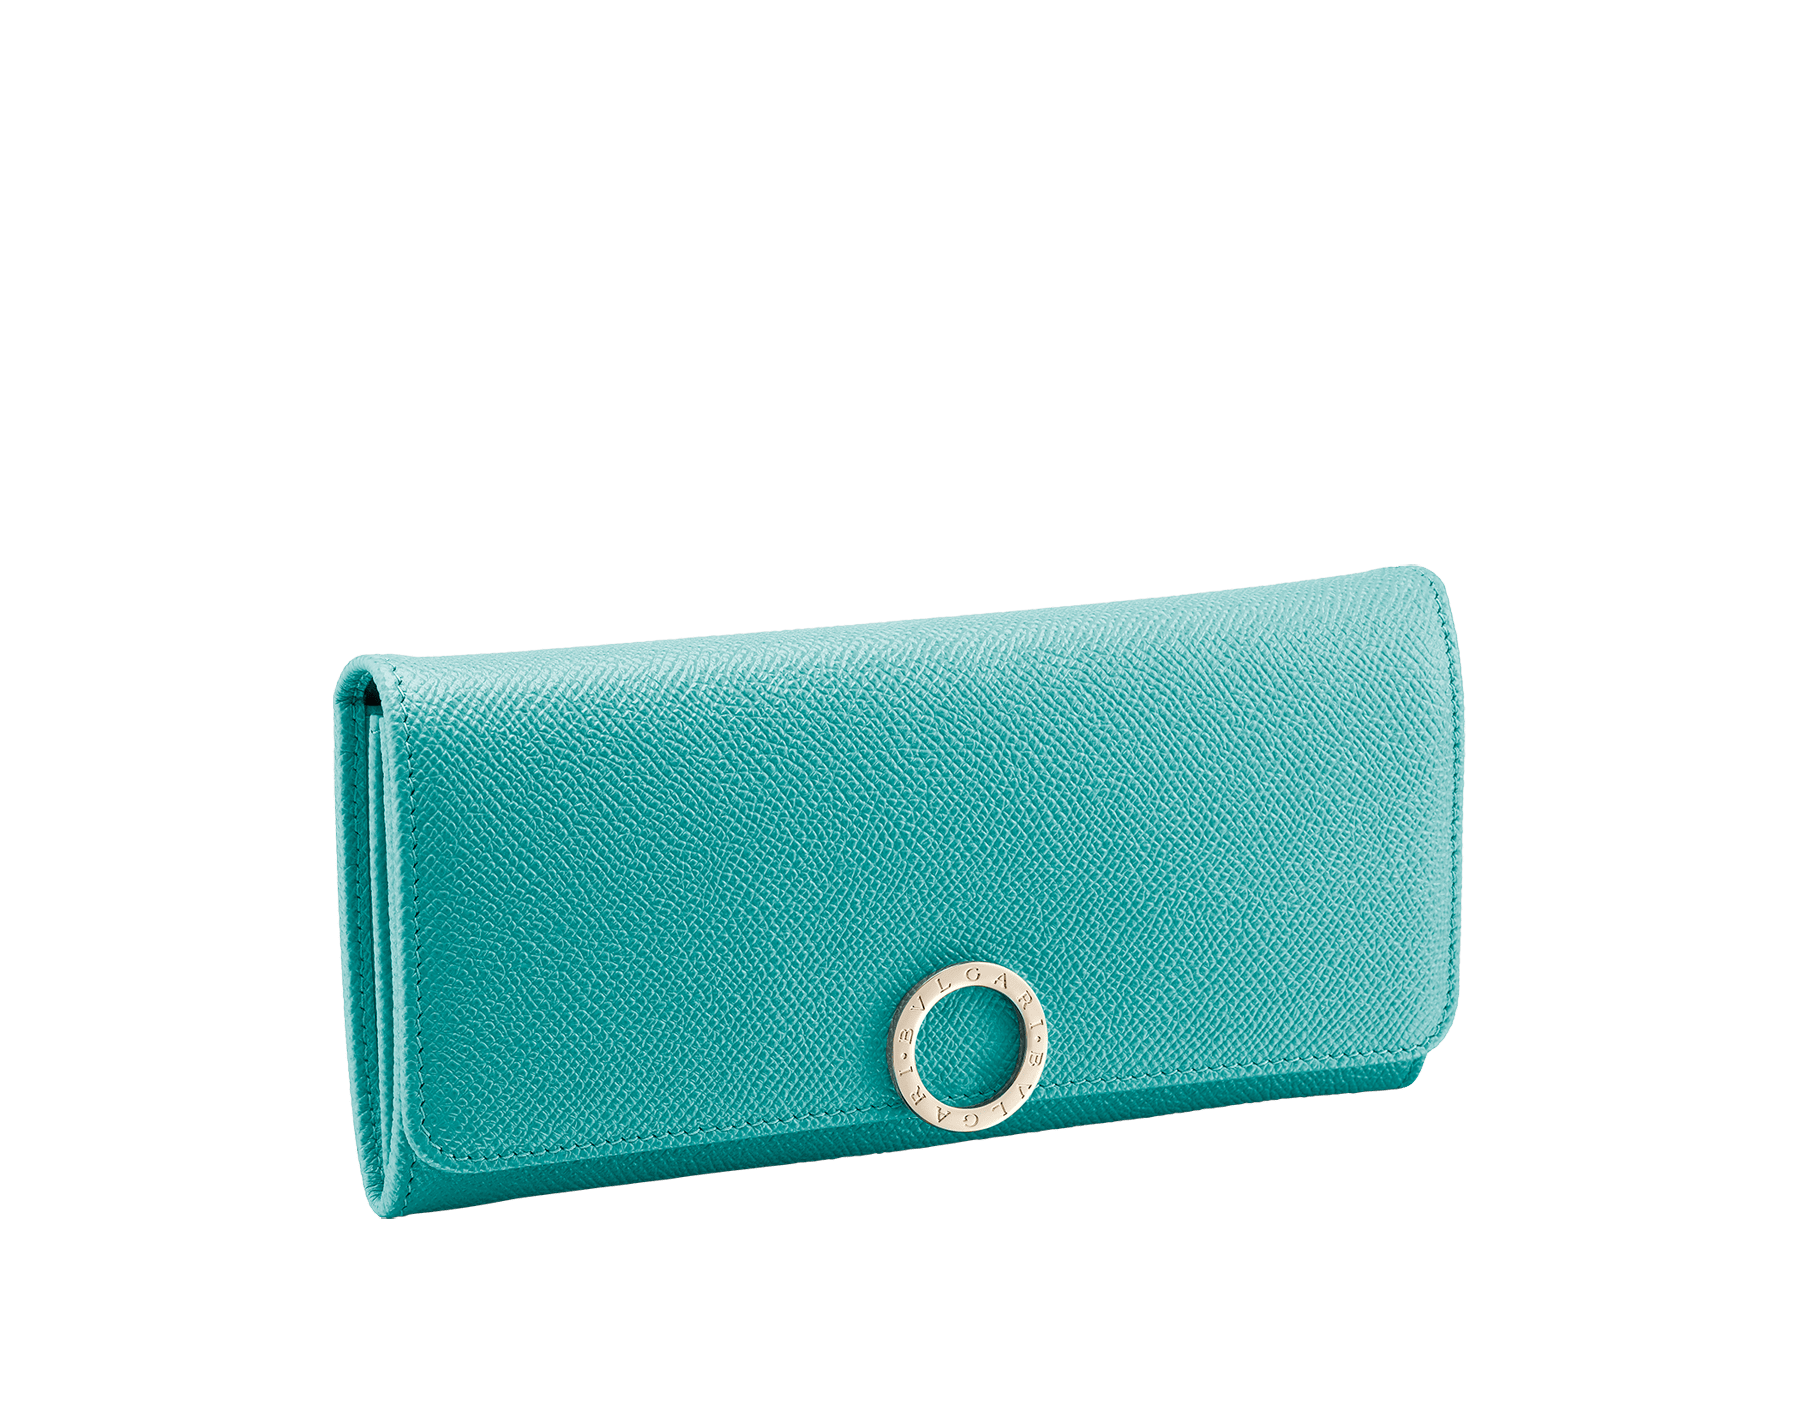 BVLGARI BVLGARI wallet pochette in arctic jade grain calf leather and grape amethyst nappa leather. Iconic logo closure clip in light gold plated brass. 289052 image 1